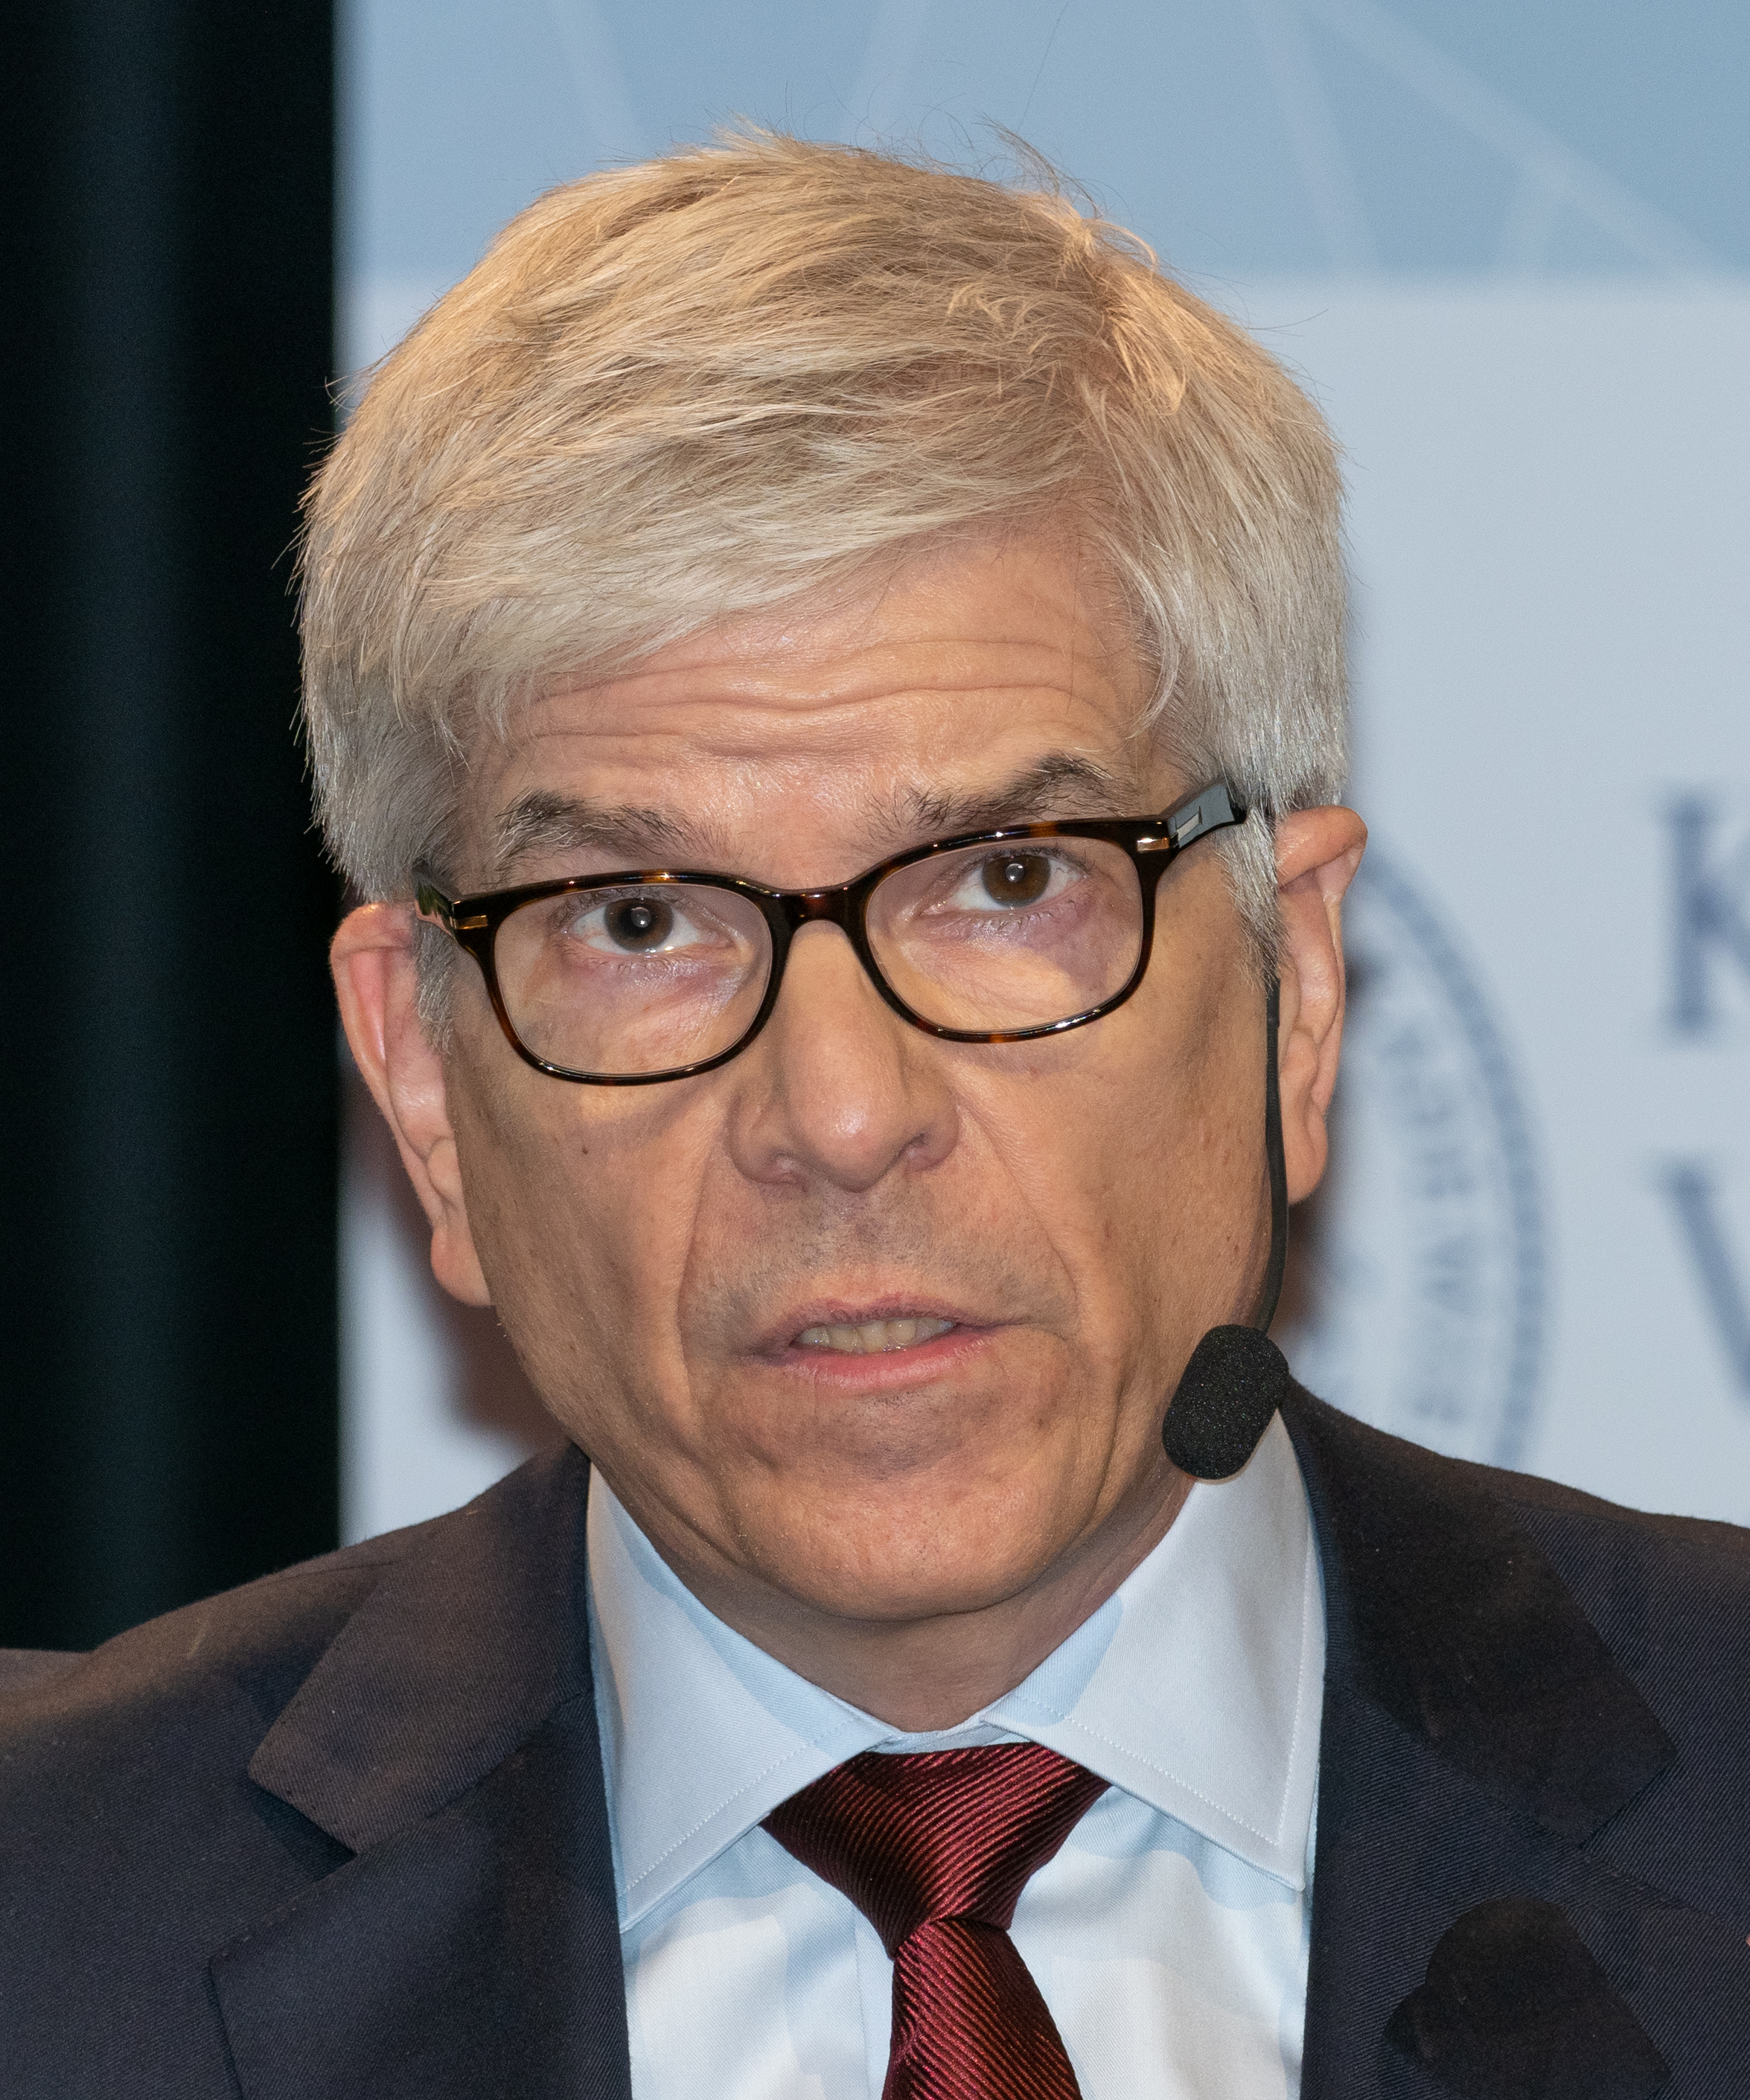 Paul Romer at the Nobel Memorial Prize Ceremony  By Bengt Nyman from Vaxholm, Sweden - EM1B6039, CC BY 2.0, https://commons.wikimedia.org/w/index.php?curid=74934767